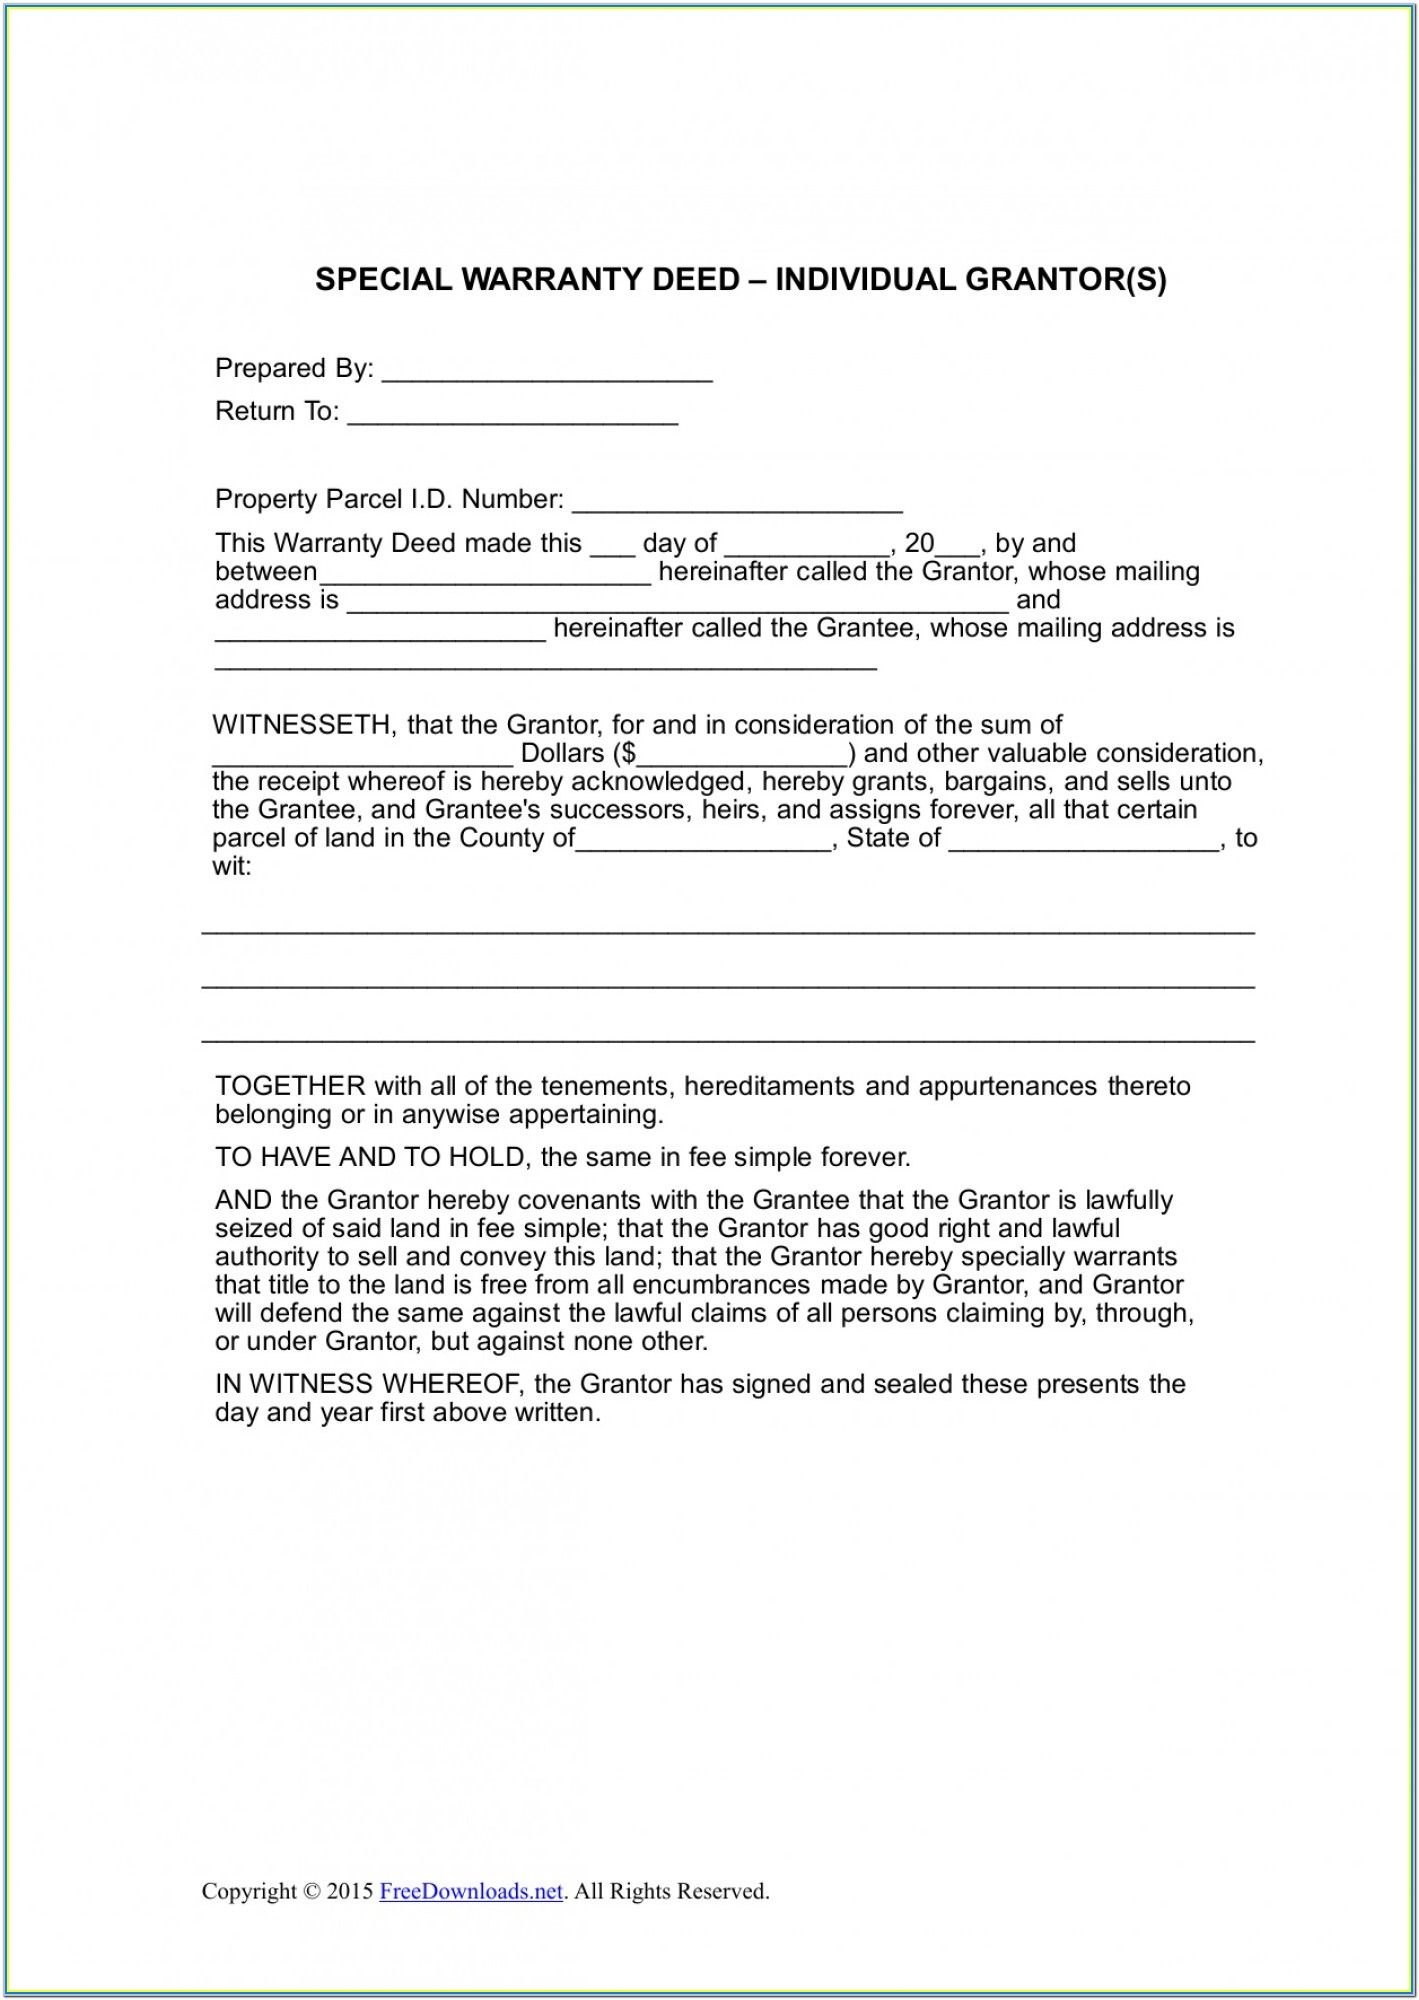 Texas Special Warranty Deed With Vendor's Lien Form